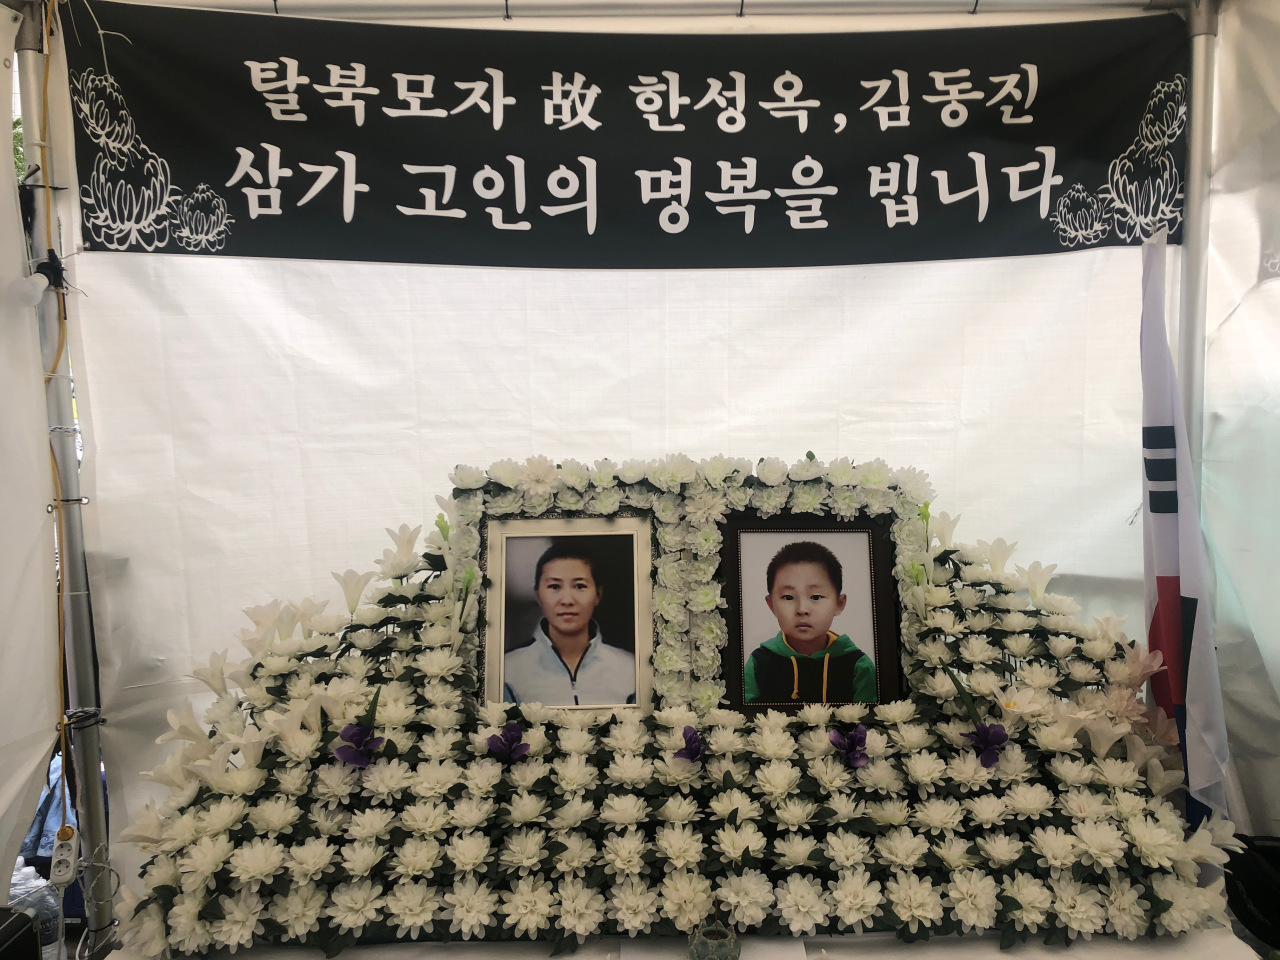 Portraits of Han Sung-ok and Kim Dong-jin are placed at the memorial altar in Gwanghwamun, Seoul, on Sept. 2. (Jo He-rim/The Korea Herald)